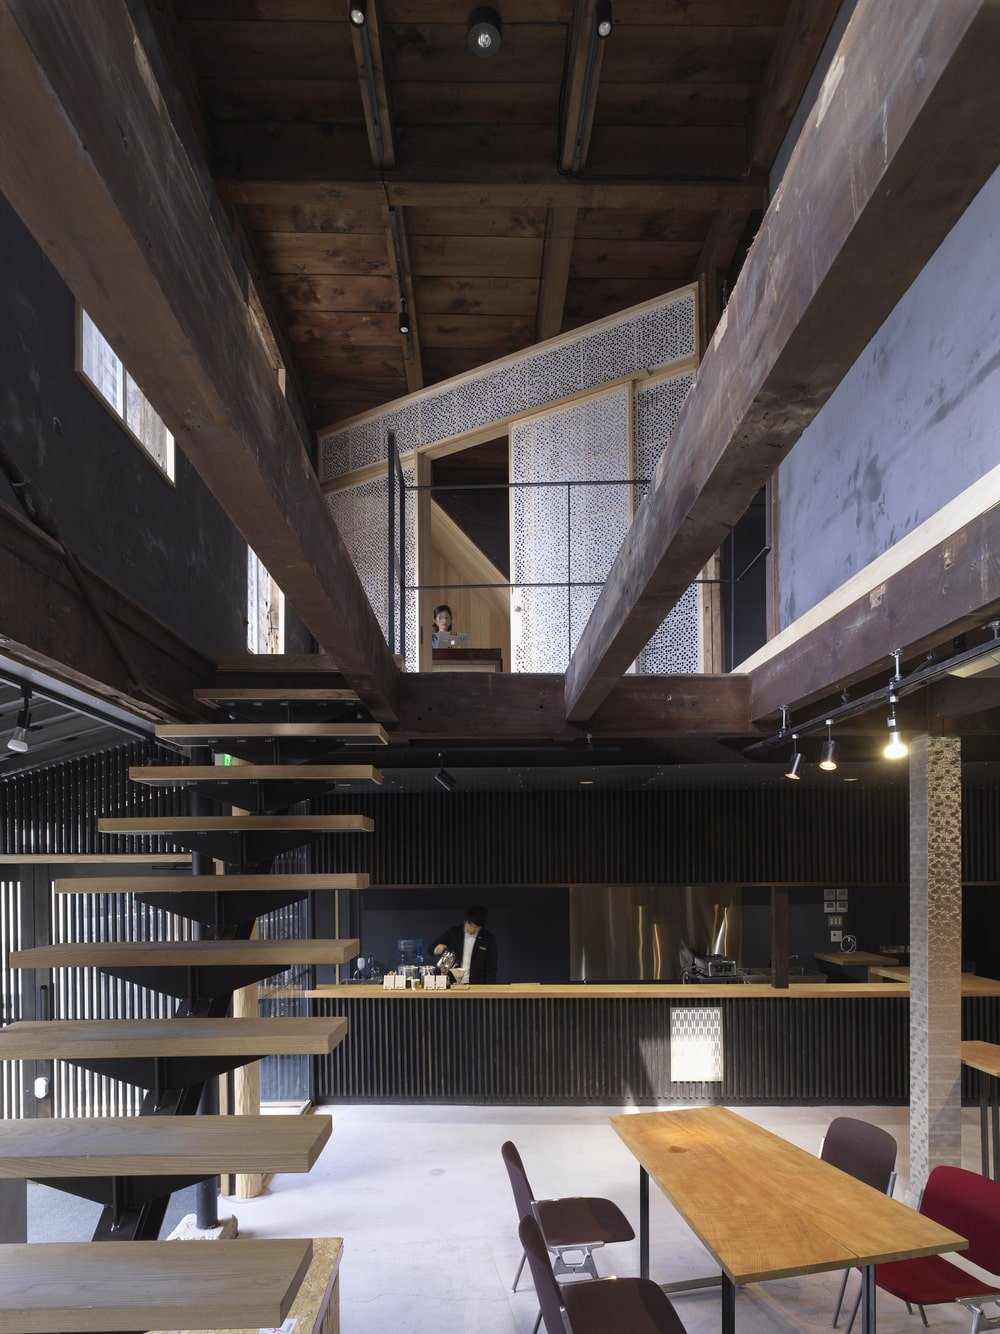 A few steps from the bar is the staircase with wooden steps that lead to the higher level.